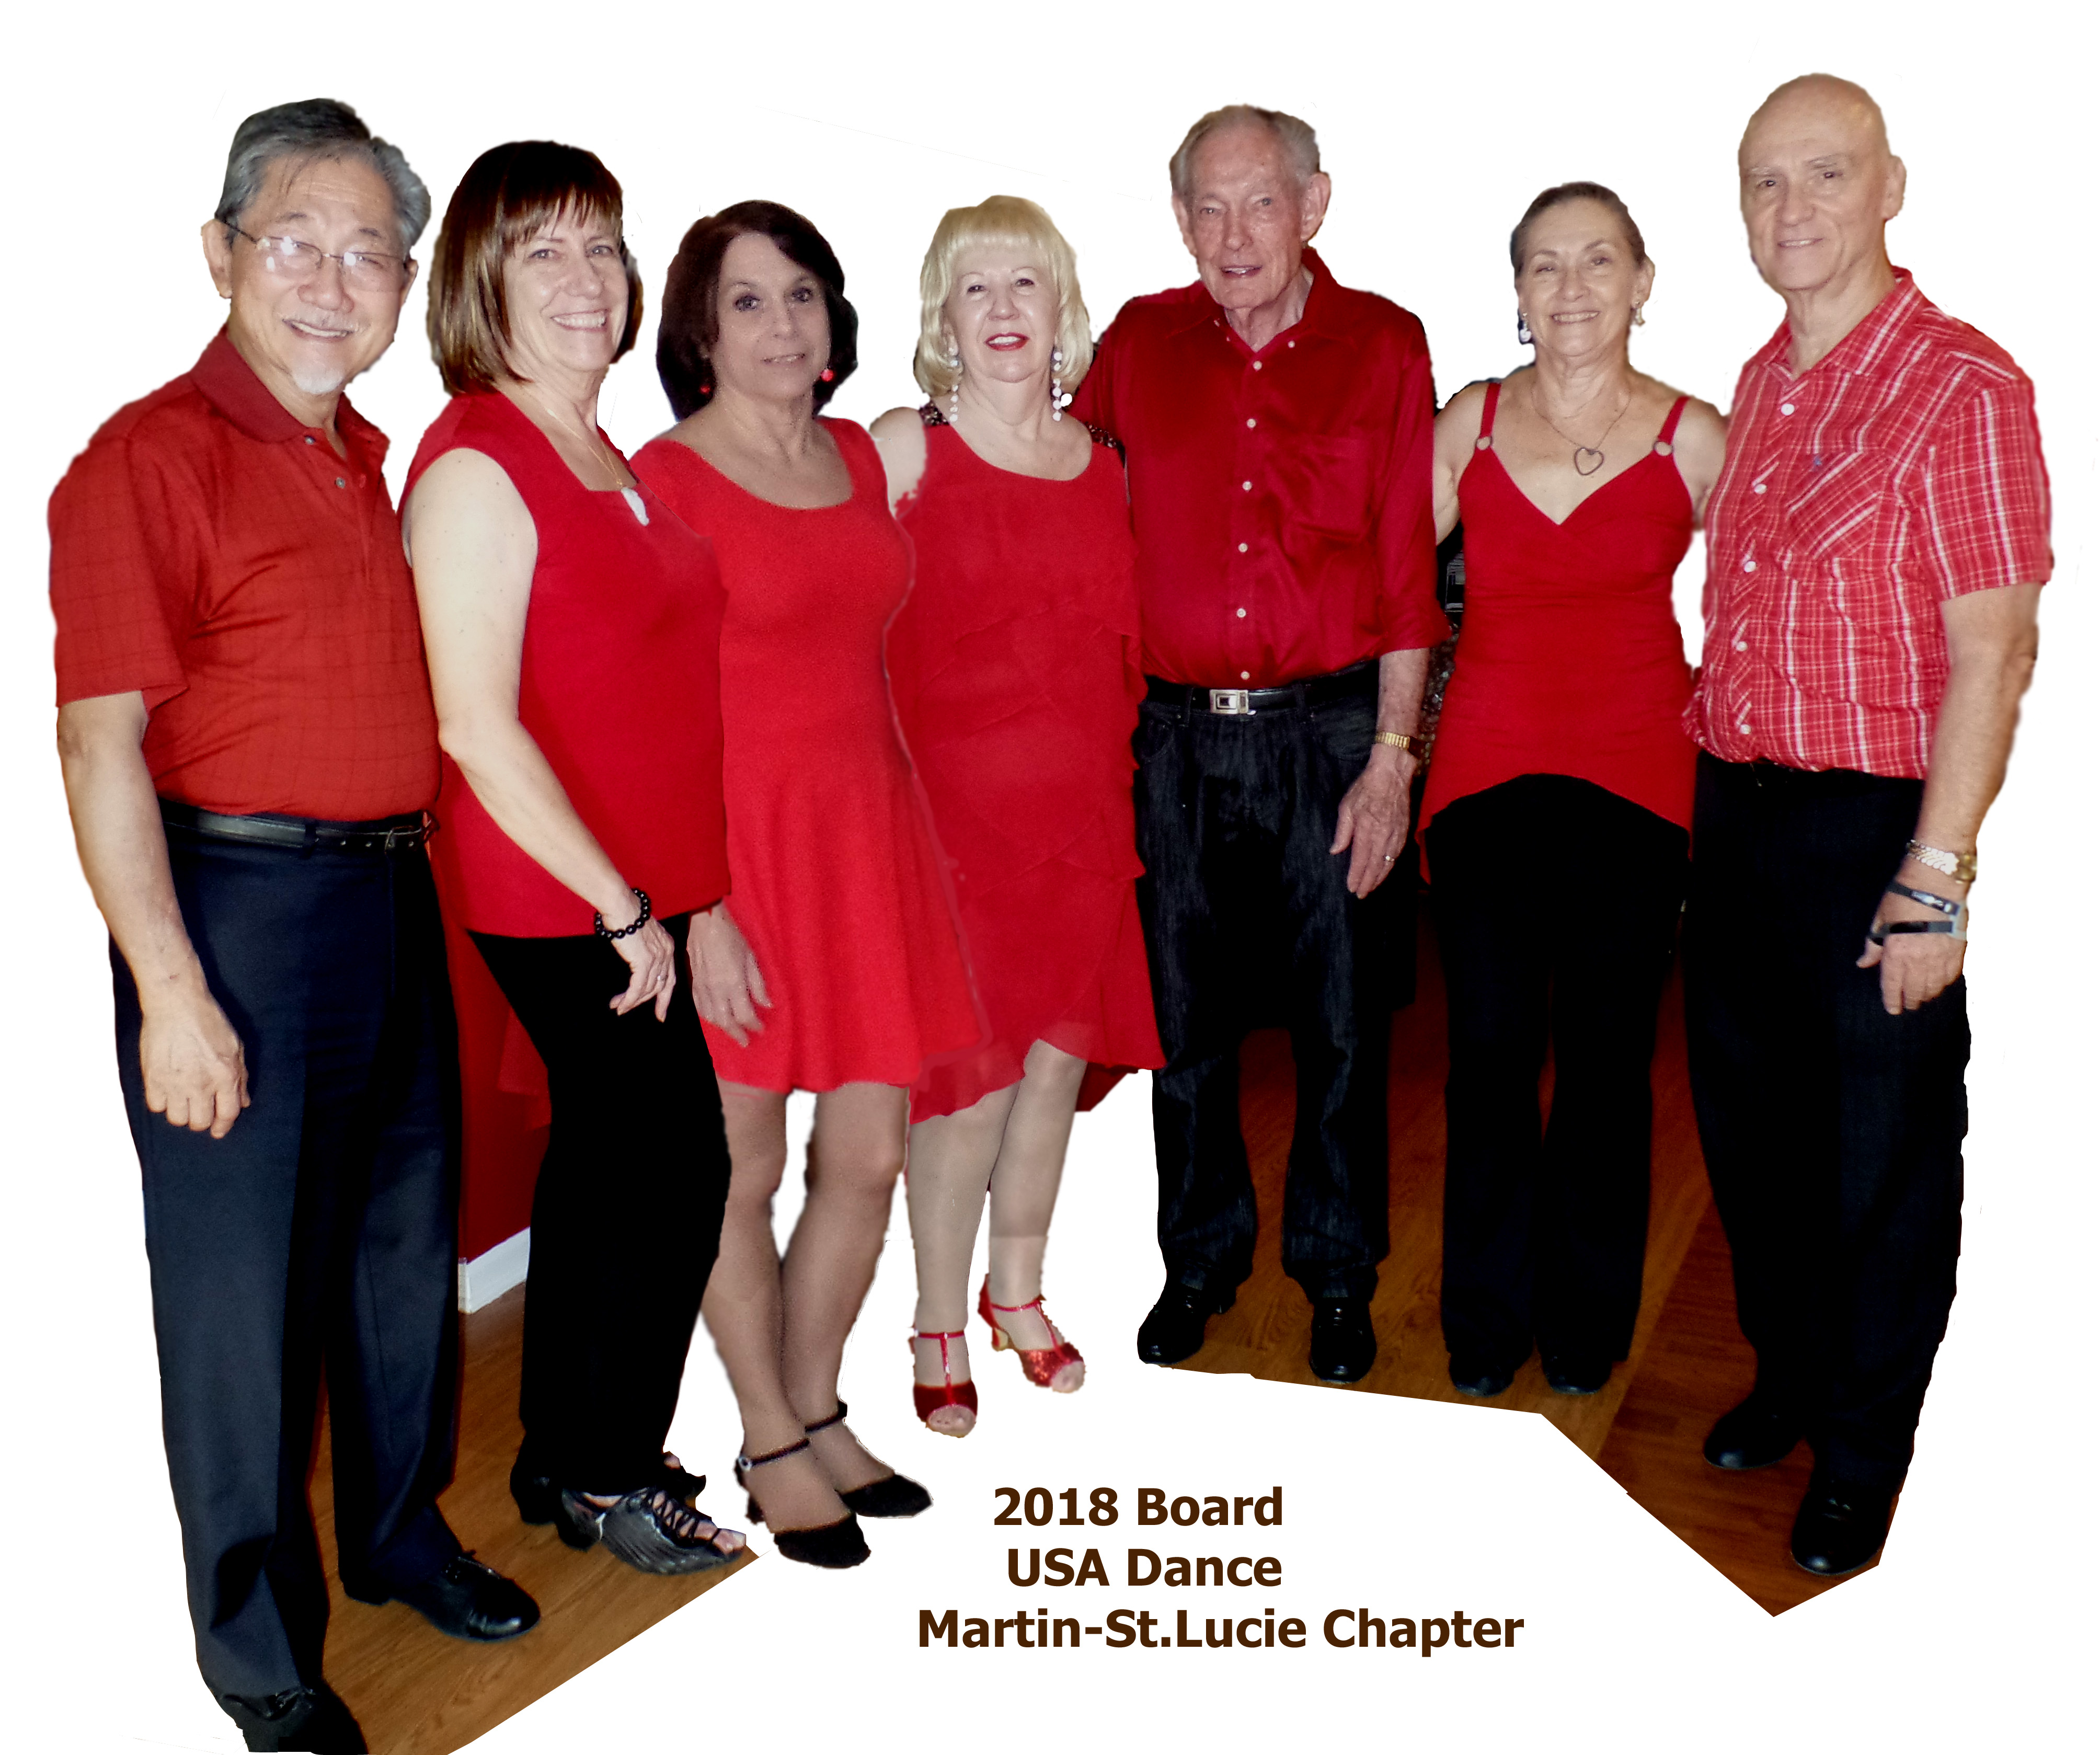 2018 USA Dance Martin-St.Lucie Chapter#6047